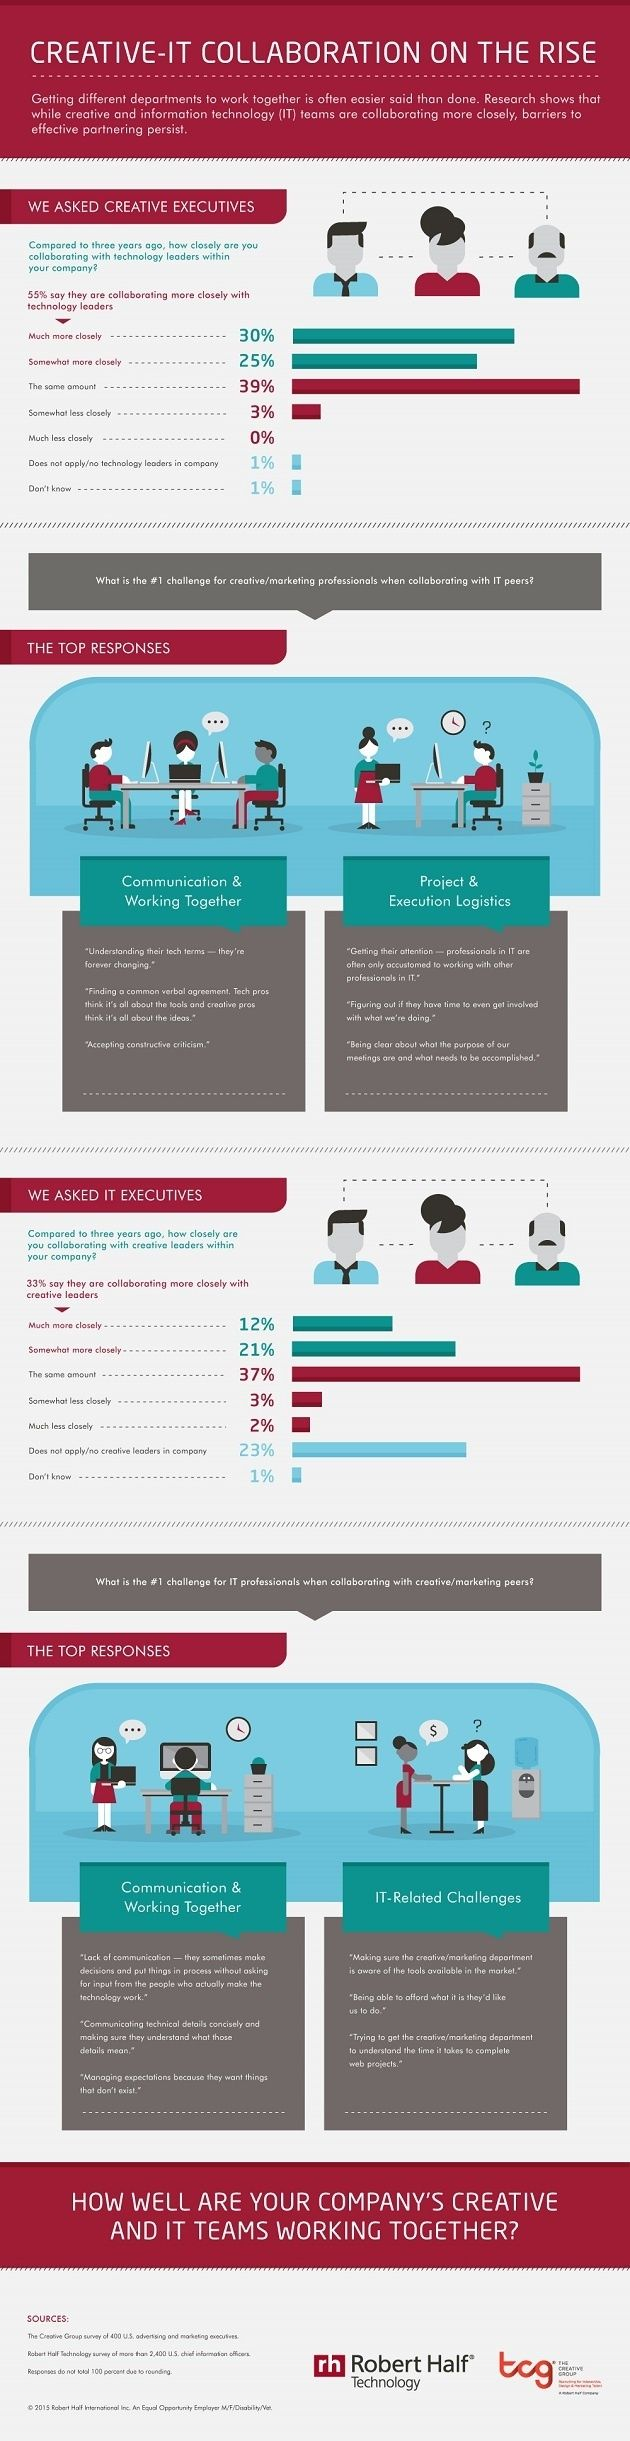 General Management - Common Challenges of Marketing-IT Collaborations [Infographic] : MarketingProfs Article